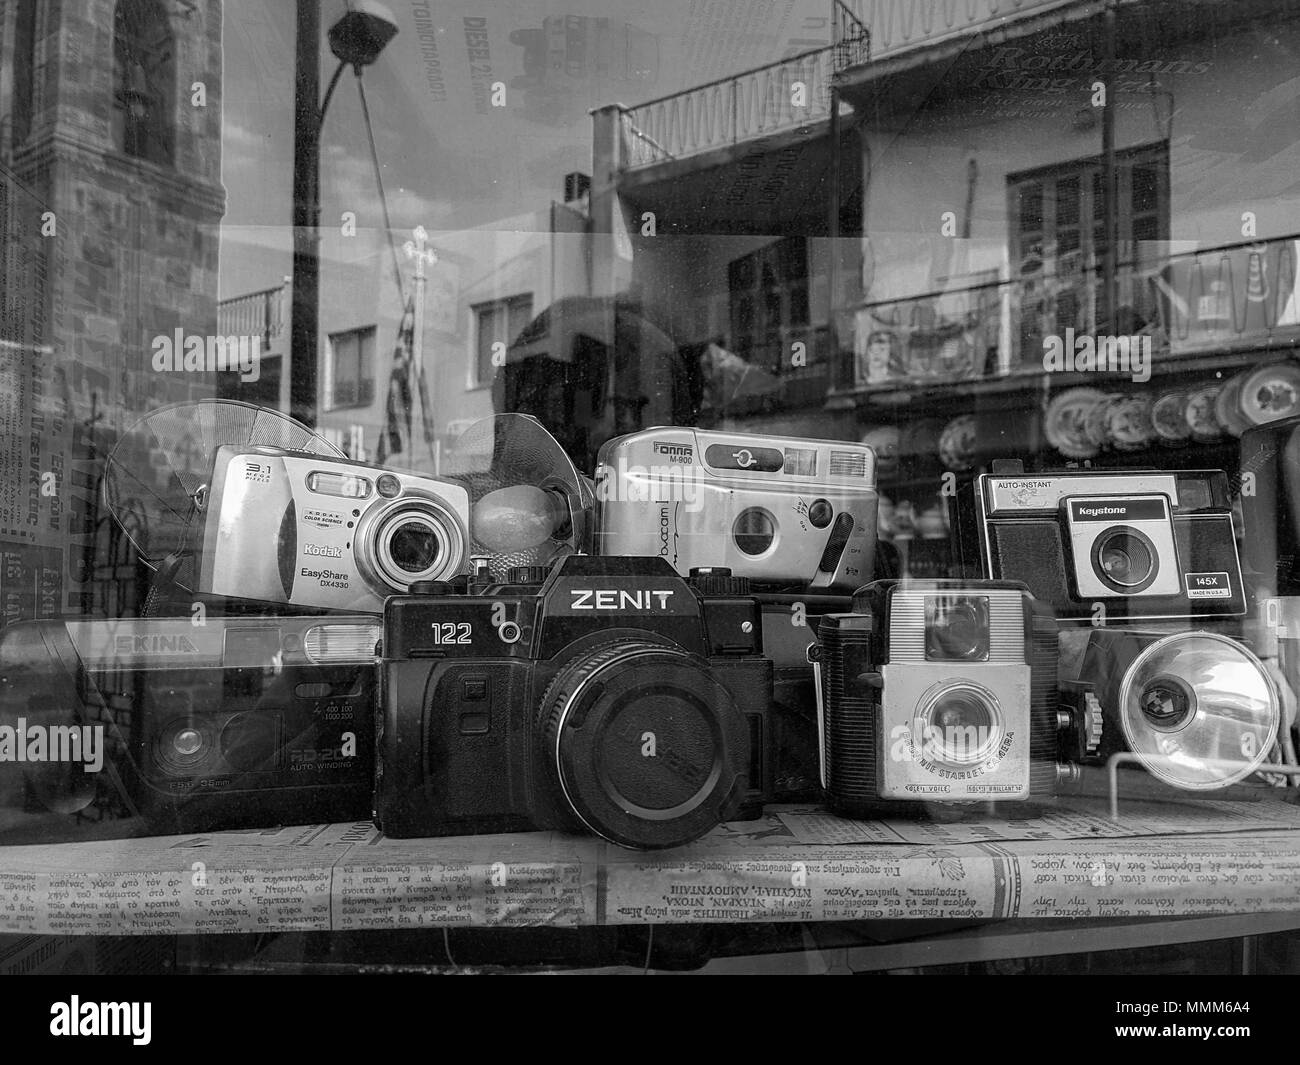 Nicosia, Cyprus - April 26, 2018: An assortment of classic vintage film cameras and flash units displayed in an antique shop window - Stock Image